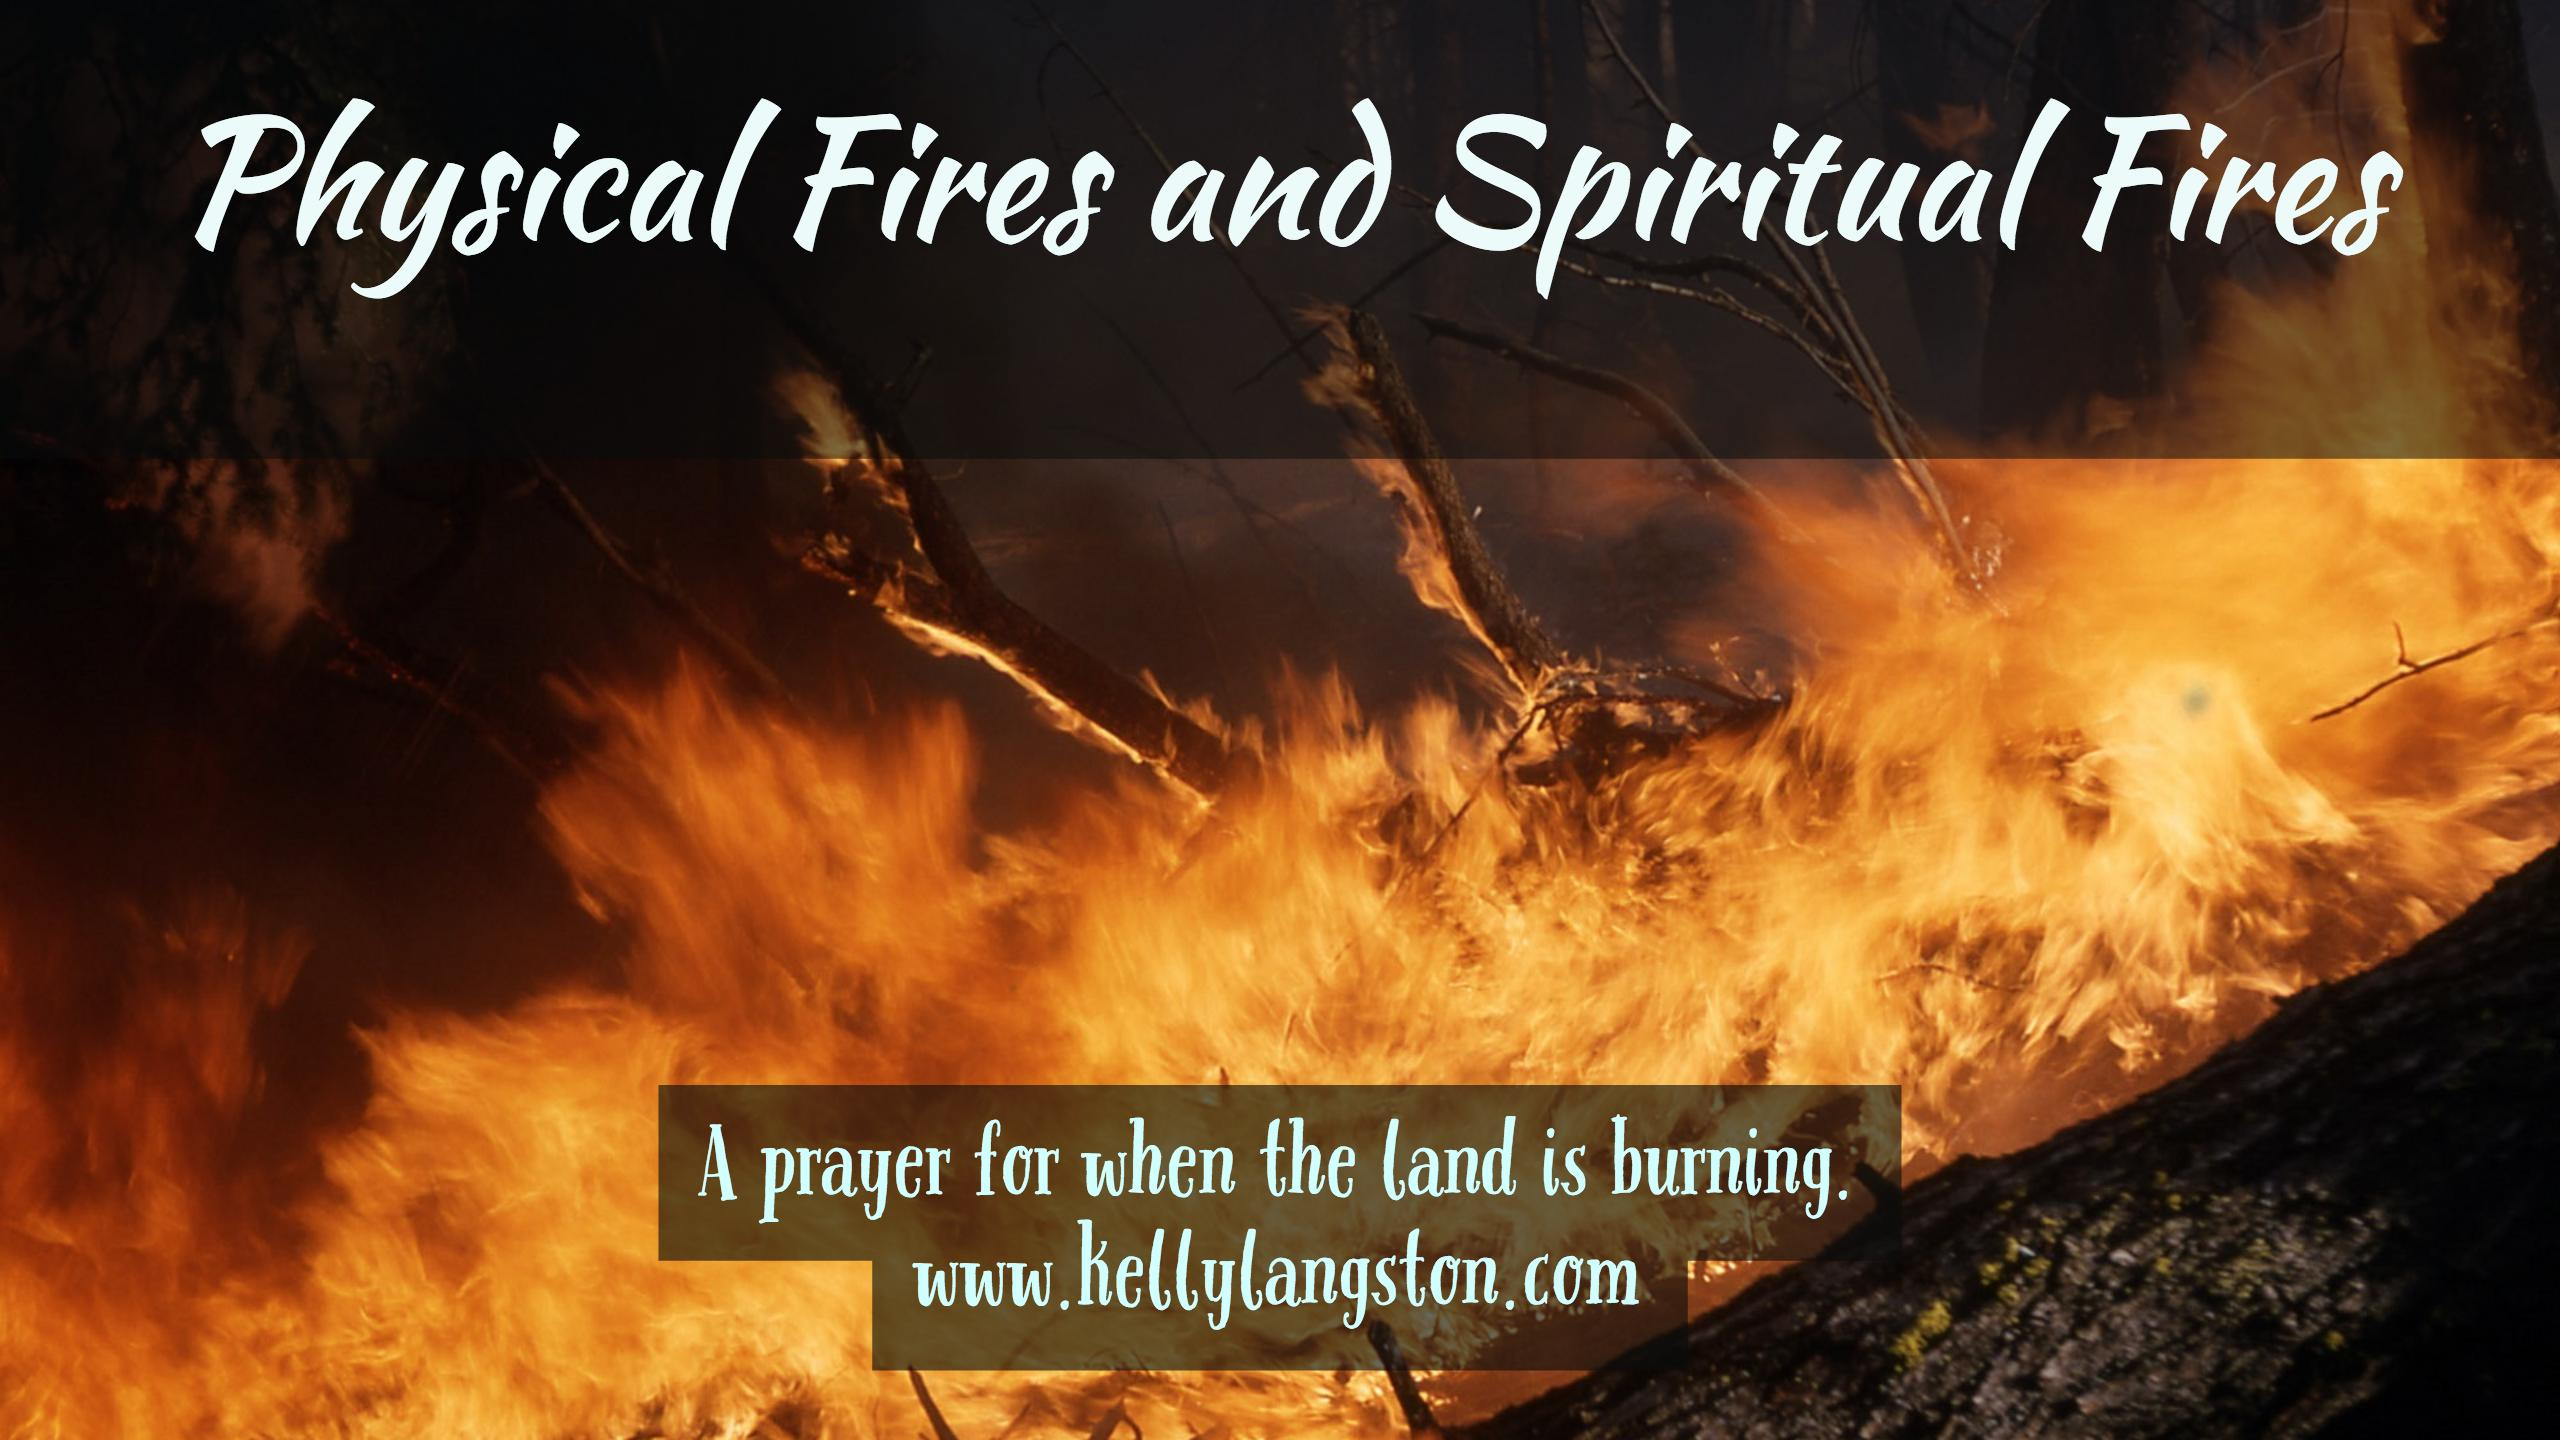 Physical Fires and Spiritual Fires: A Prayer for Wildfires